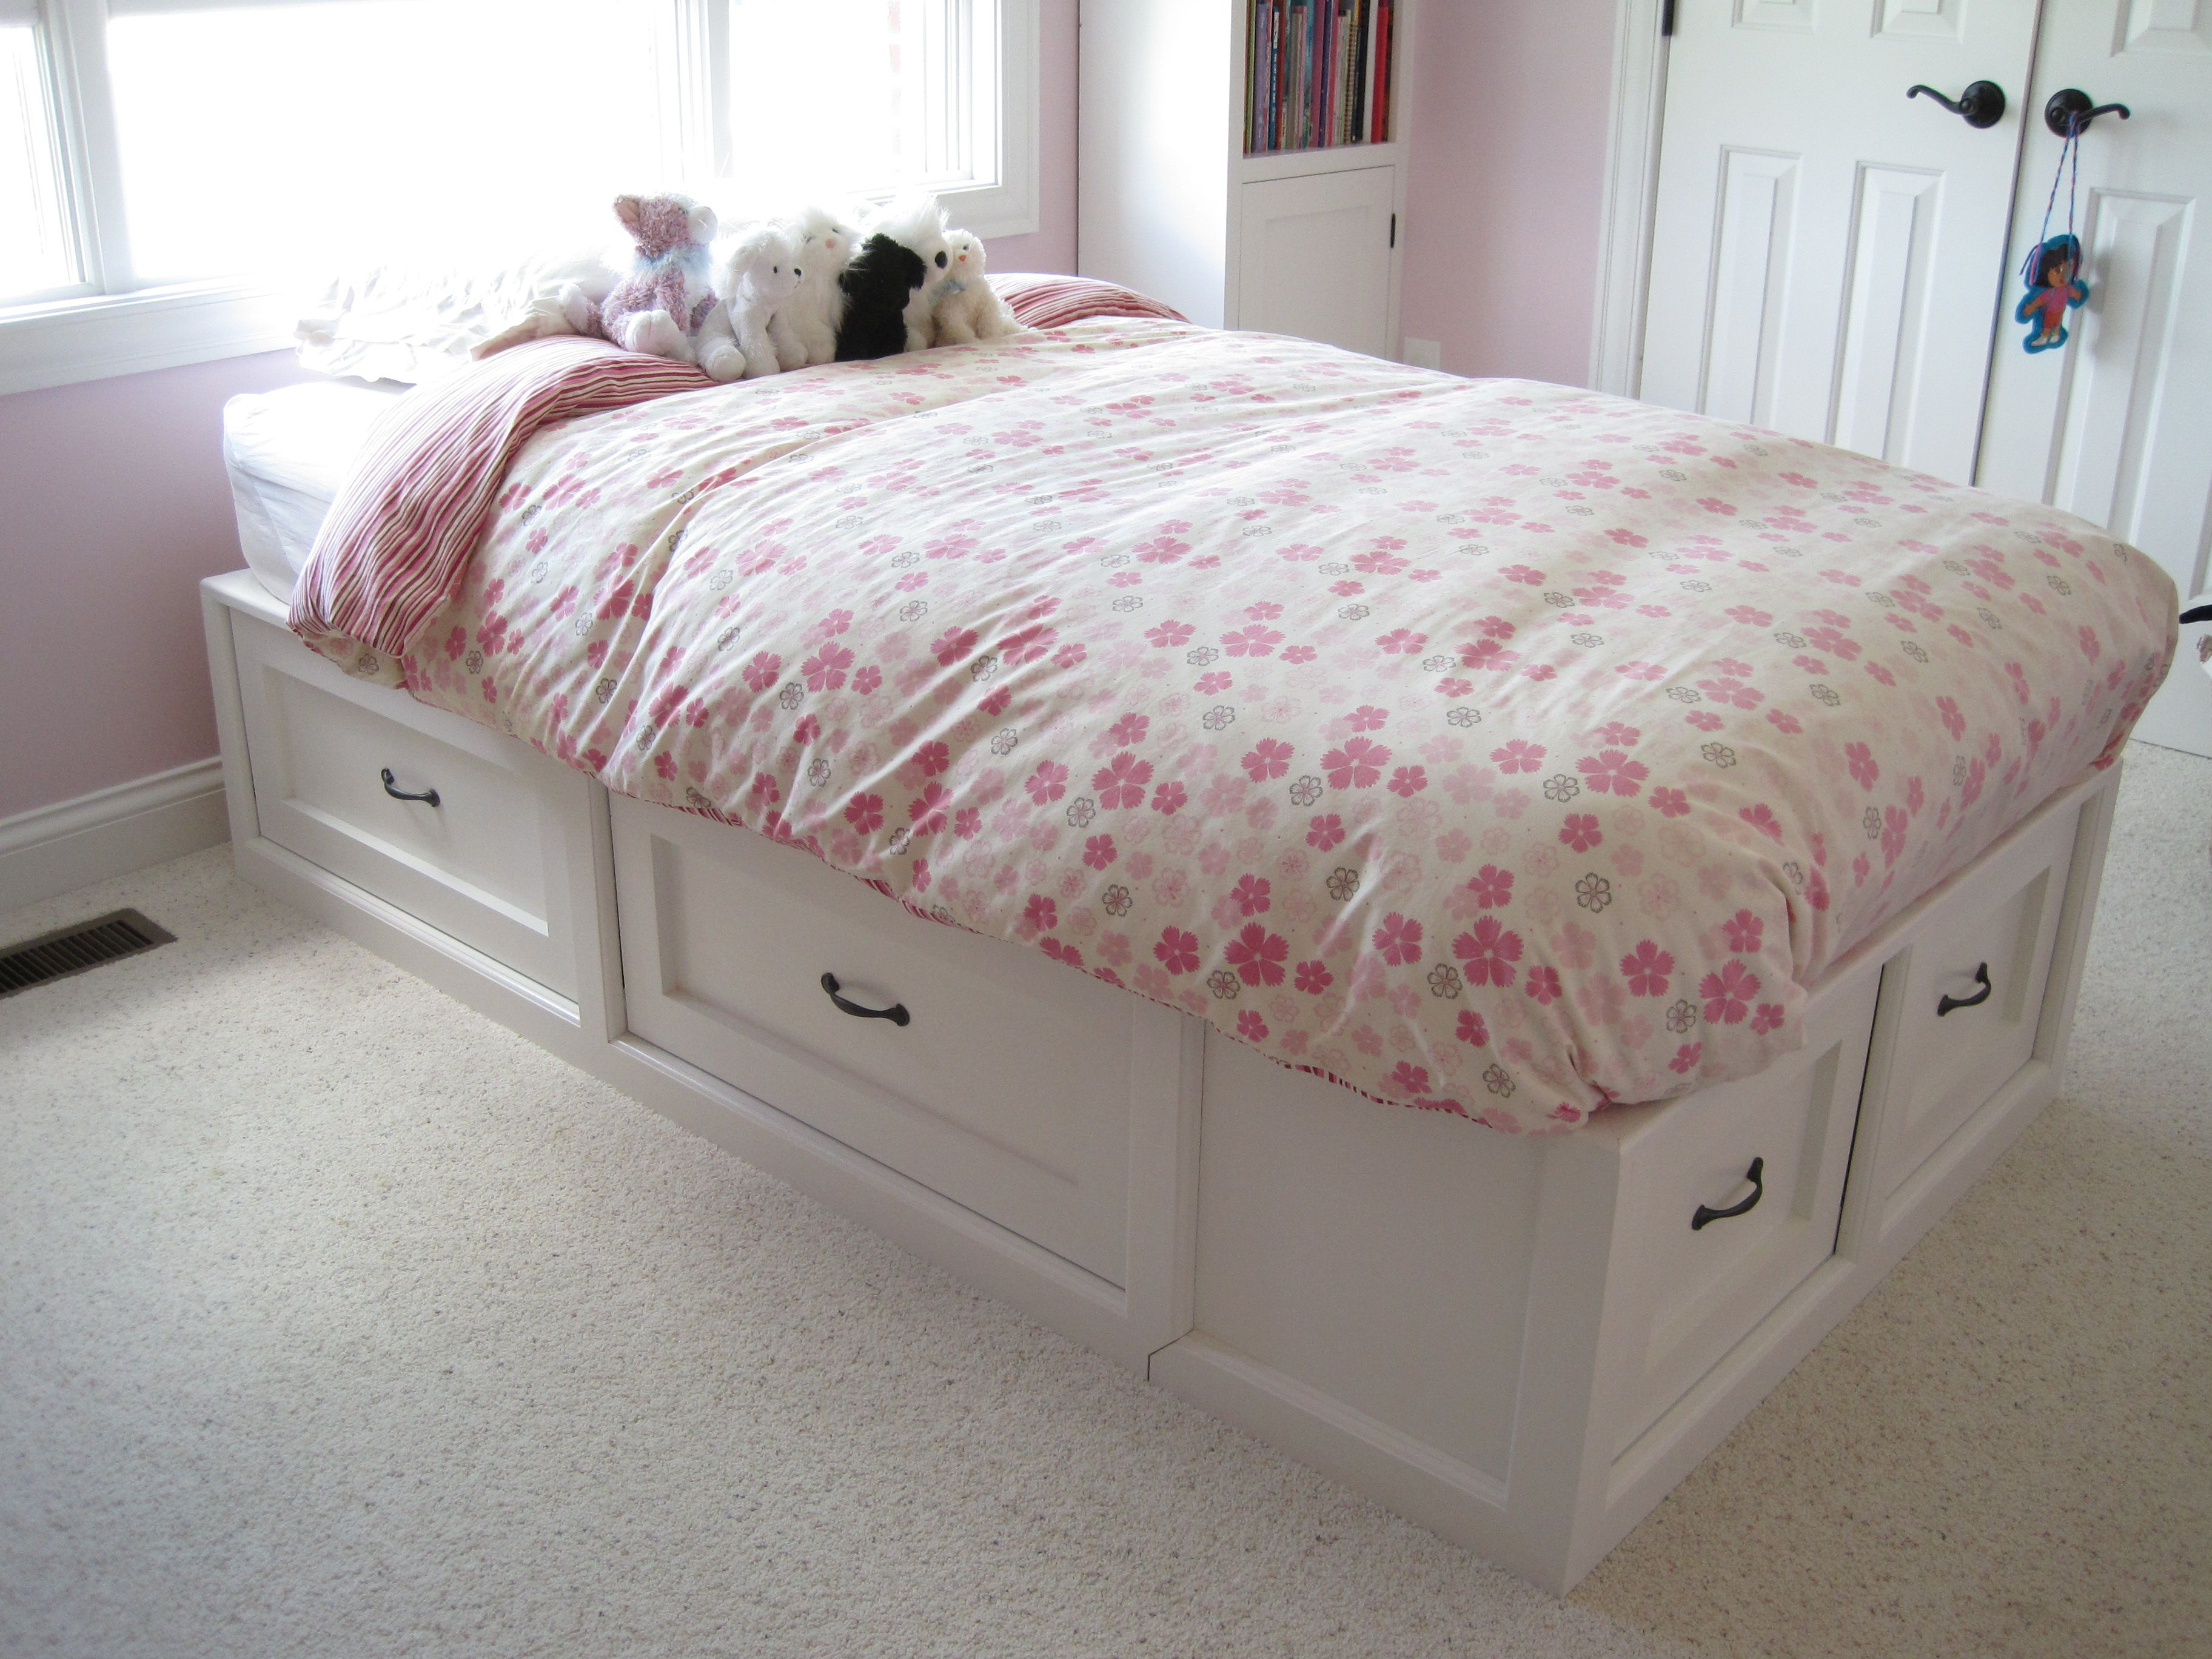 Pretty in Pink {Pottery Barn knock off bed} The Reveal